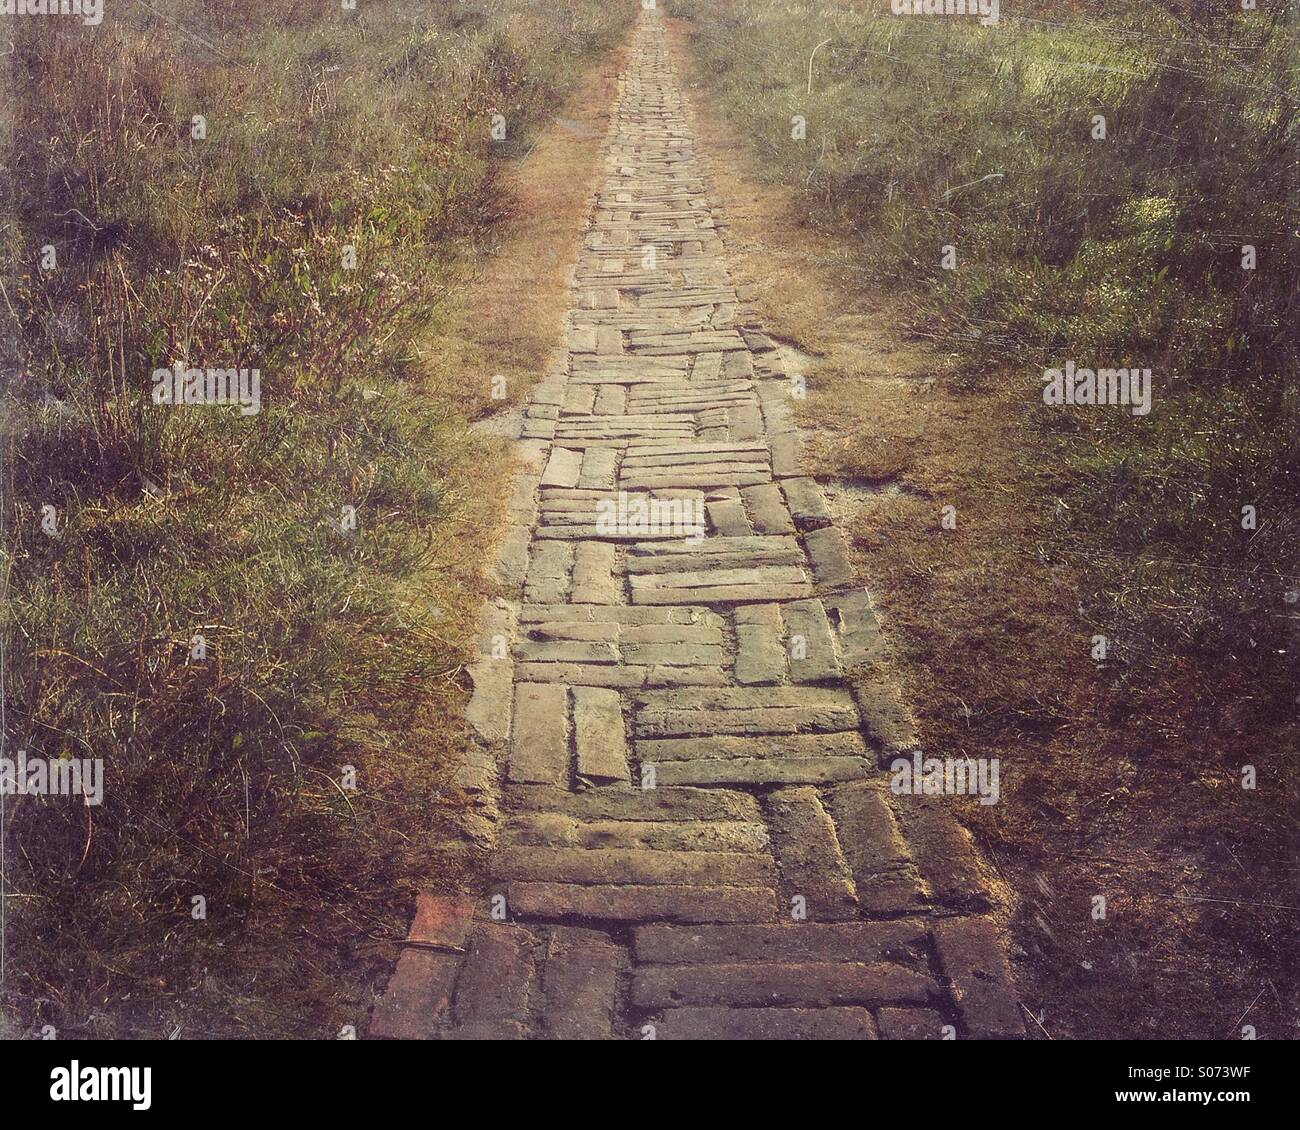 Brick path through grassy field - Stock Image